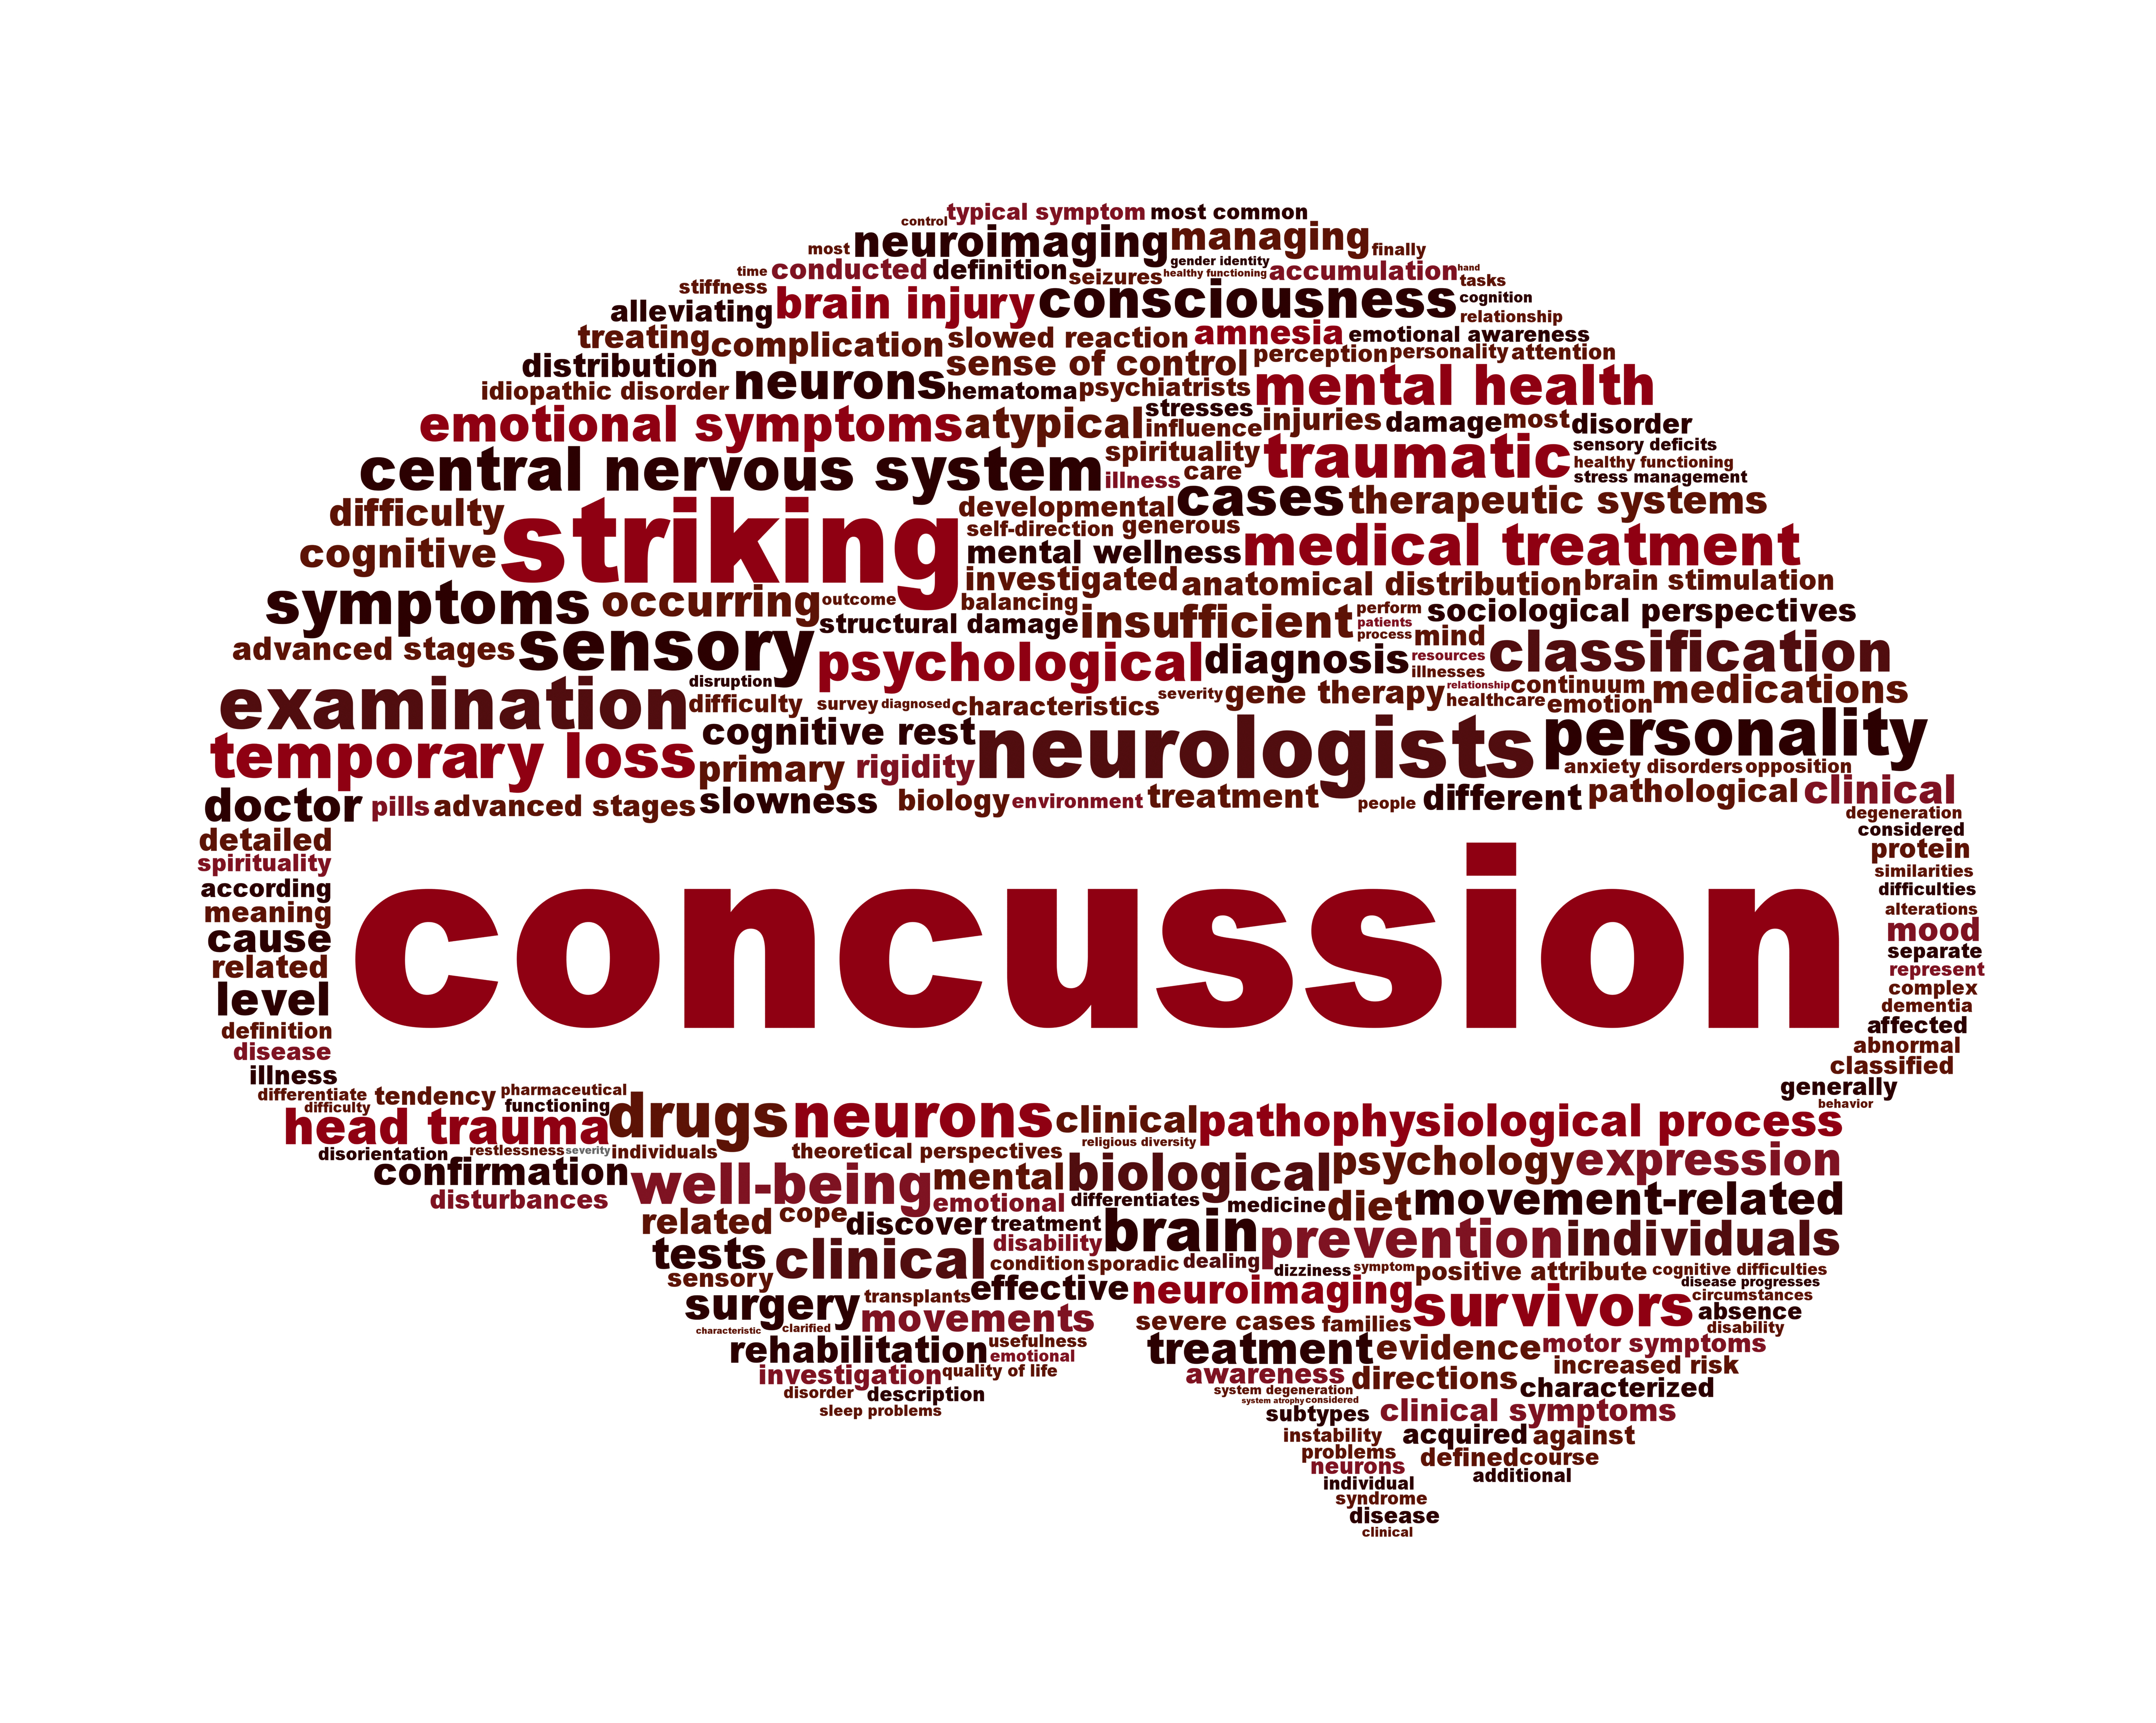 tuesday q & a: risk of sustaining a concussion higher after already